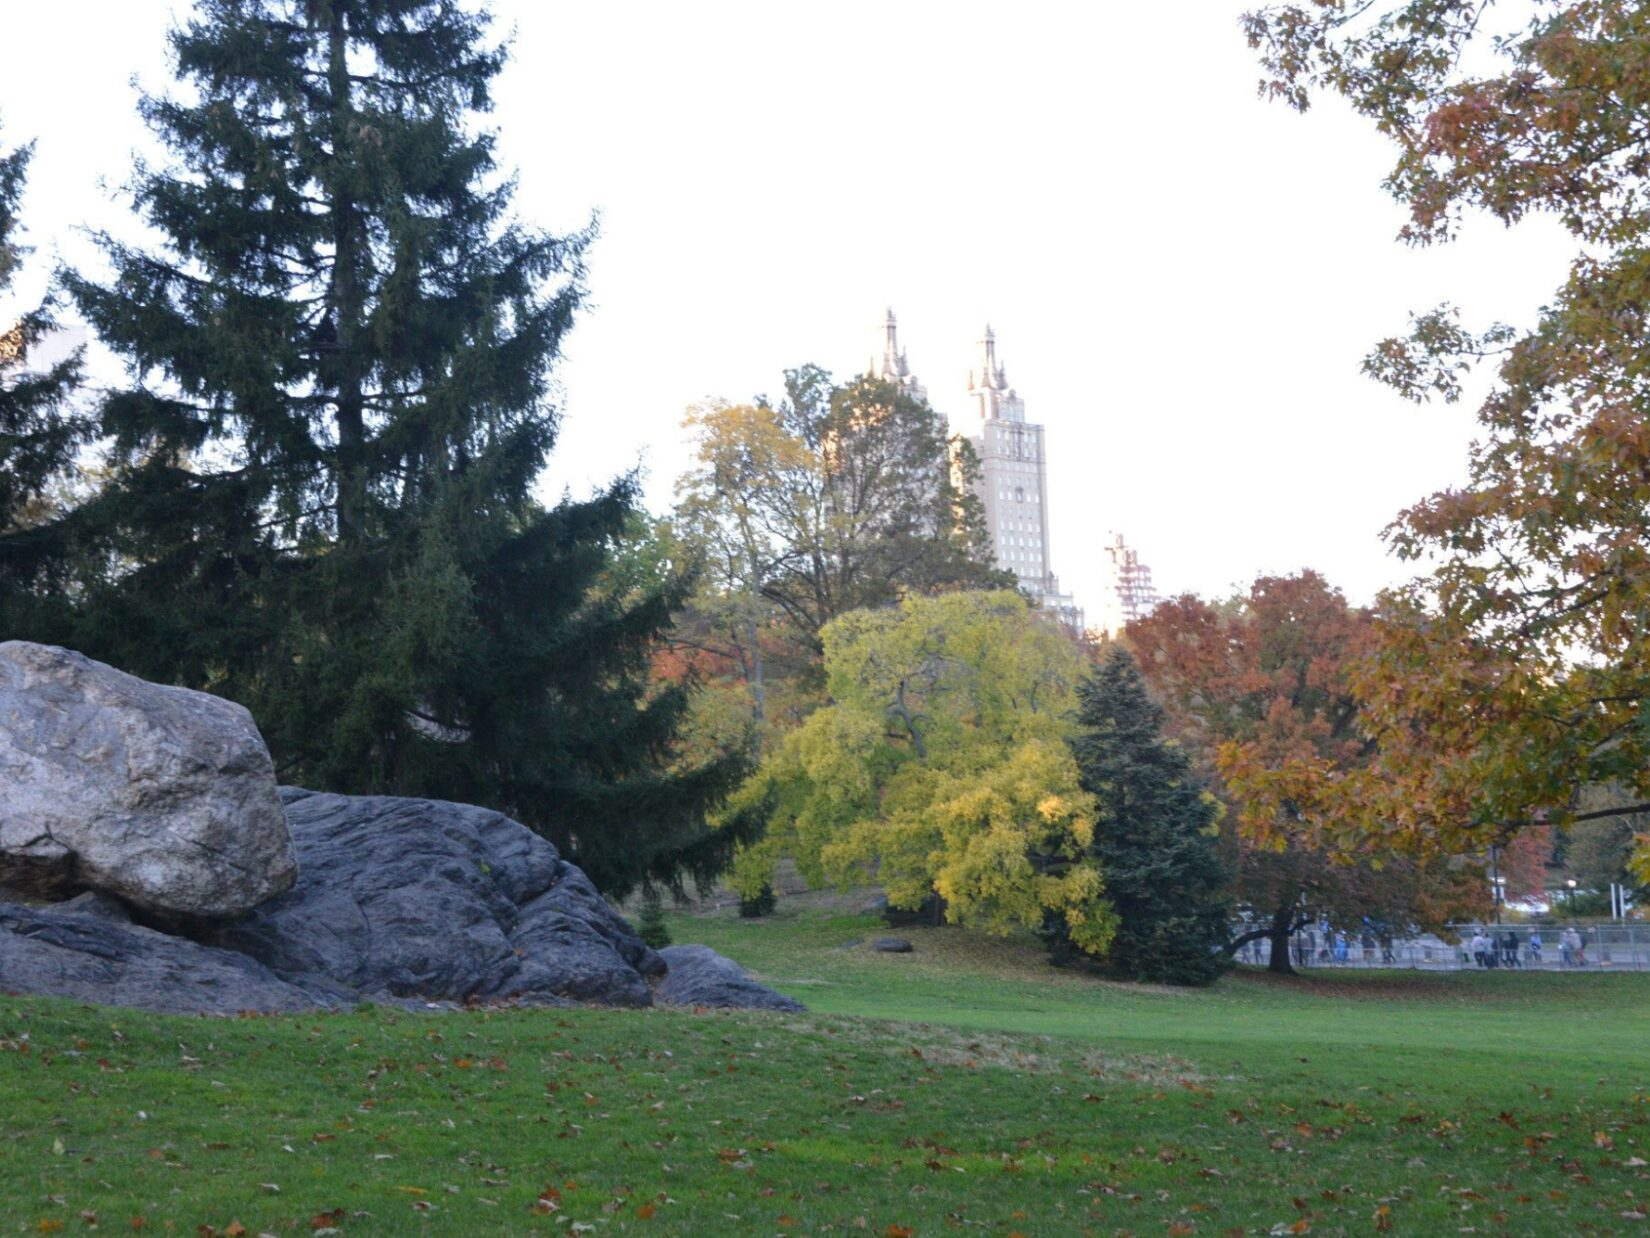 The landscape is shown featuring schist and pines surrounding a green lawn.